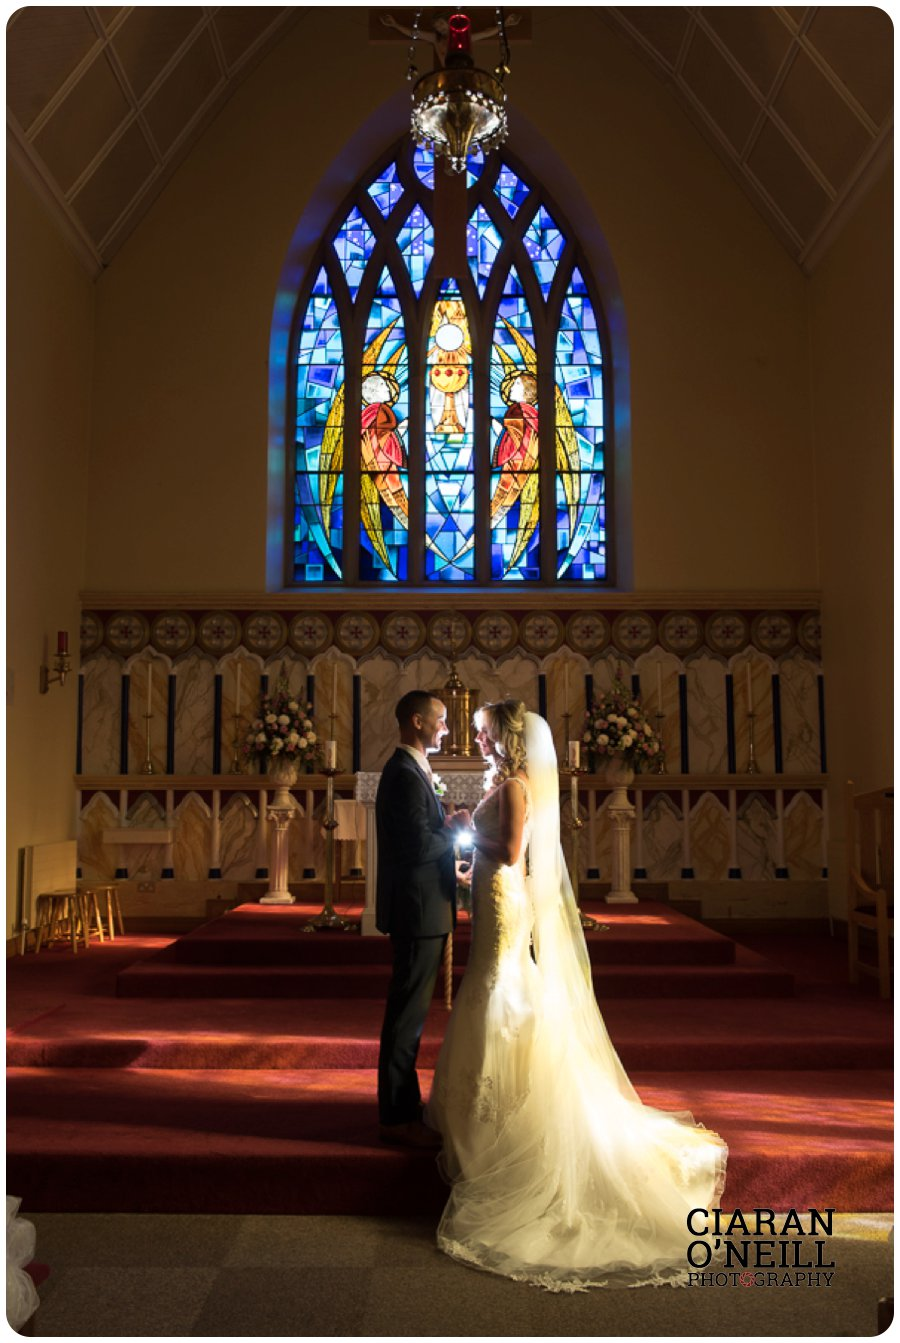 sheena-patricks-wedding-at-the-killyhevlin-hotel-spa-by-ciaran-oneill-photography-13